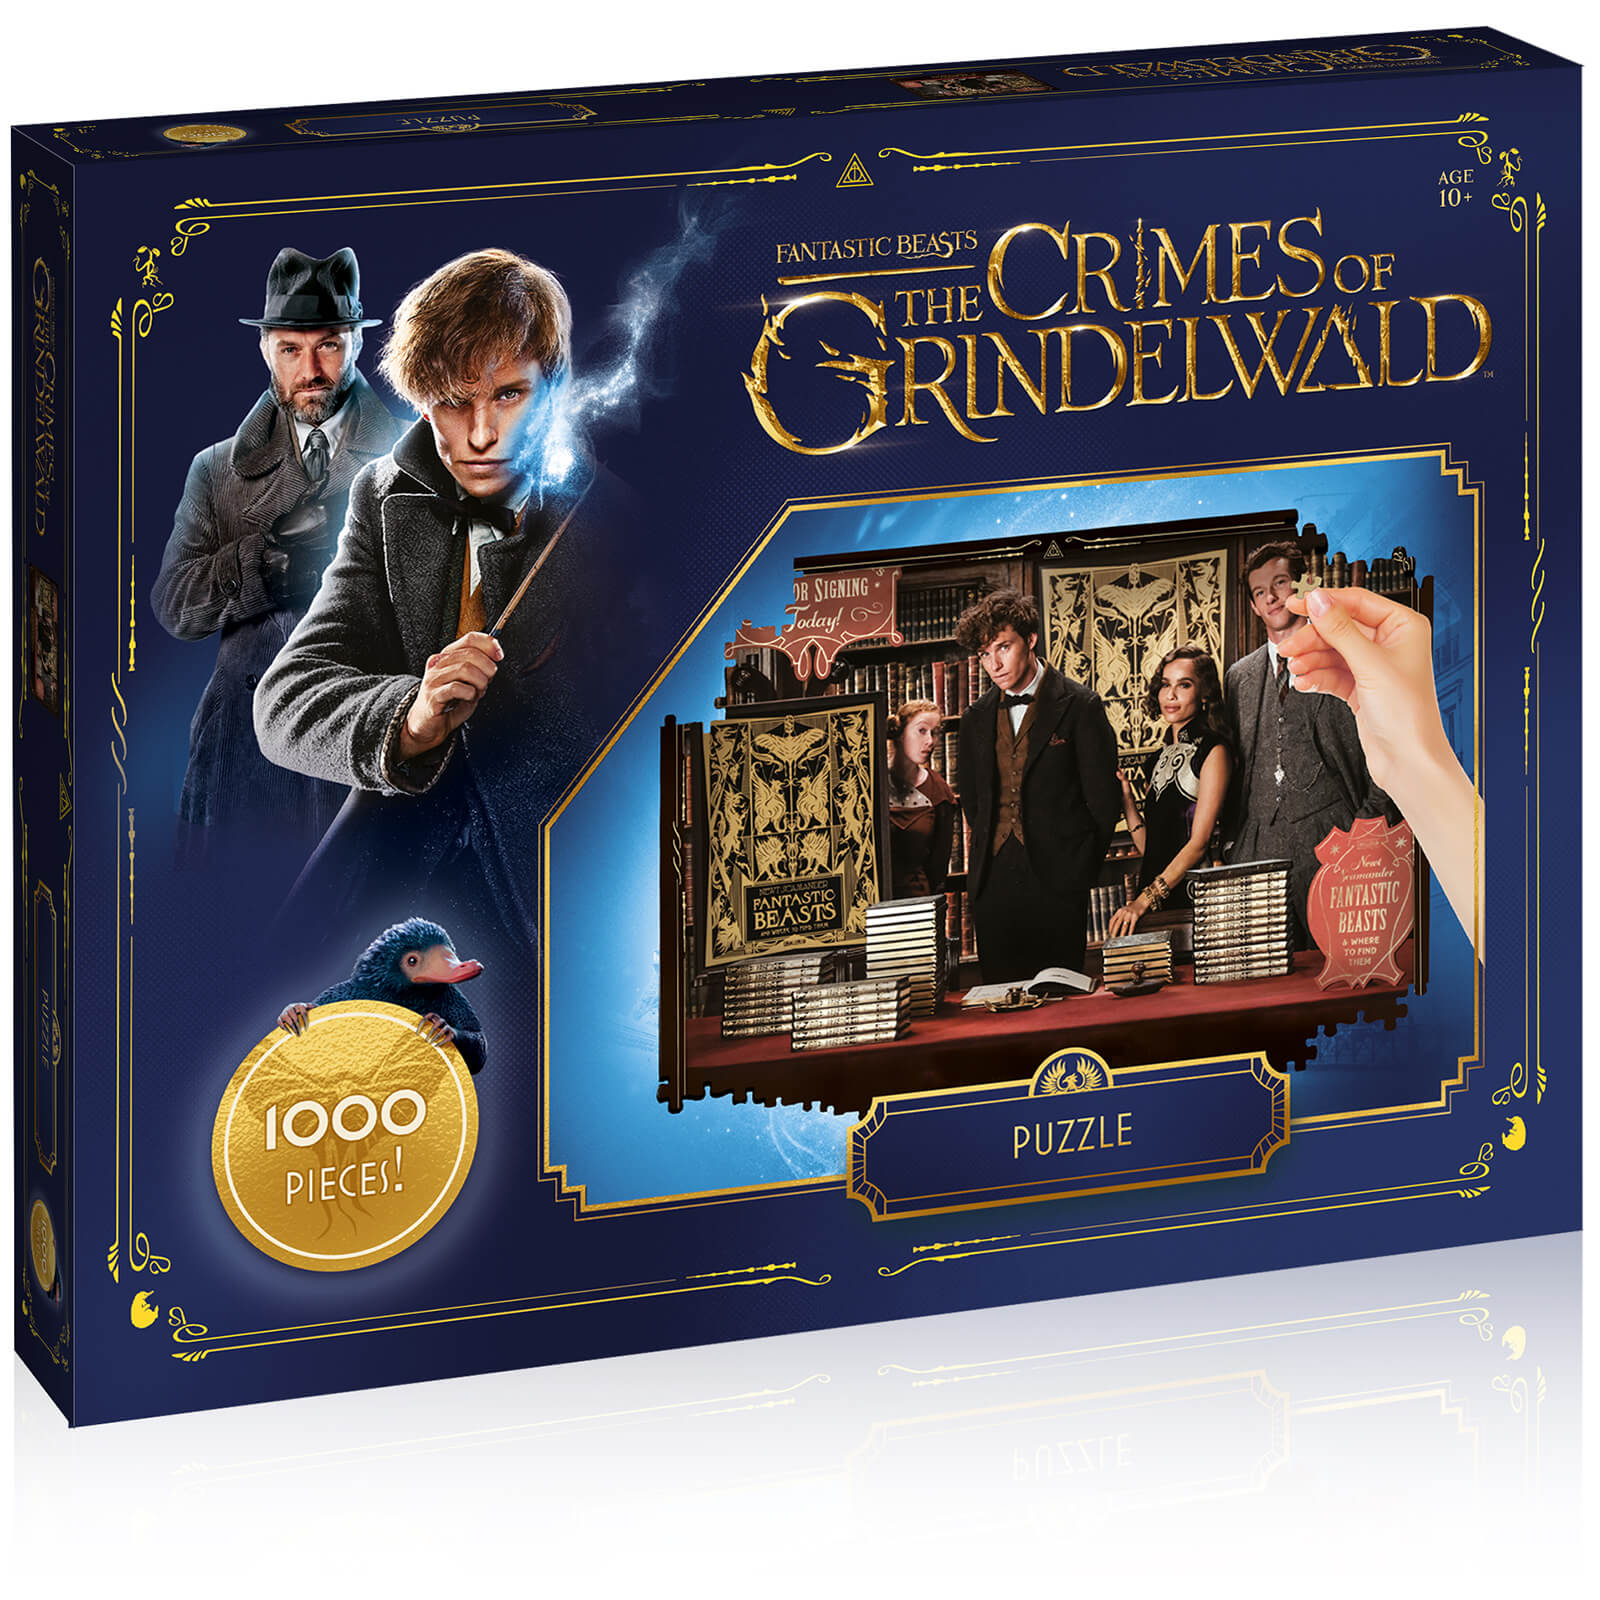 Image of 1000 Piece Jigsaw Puzzle - Fantastic Beasts Edition